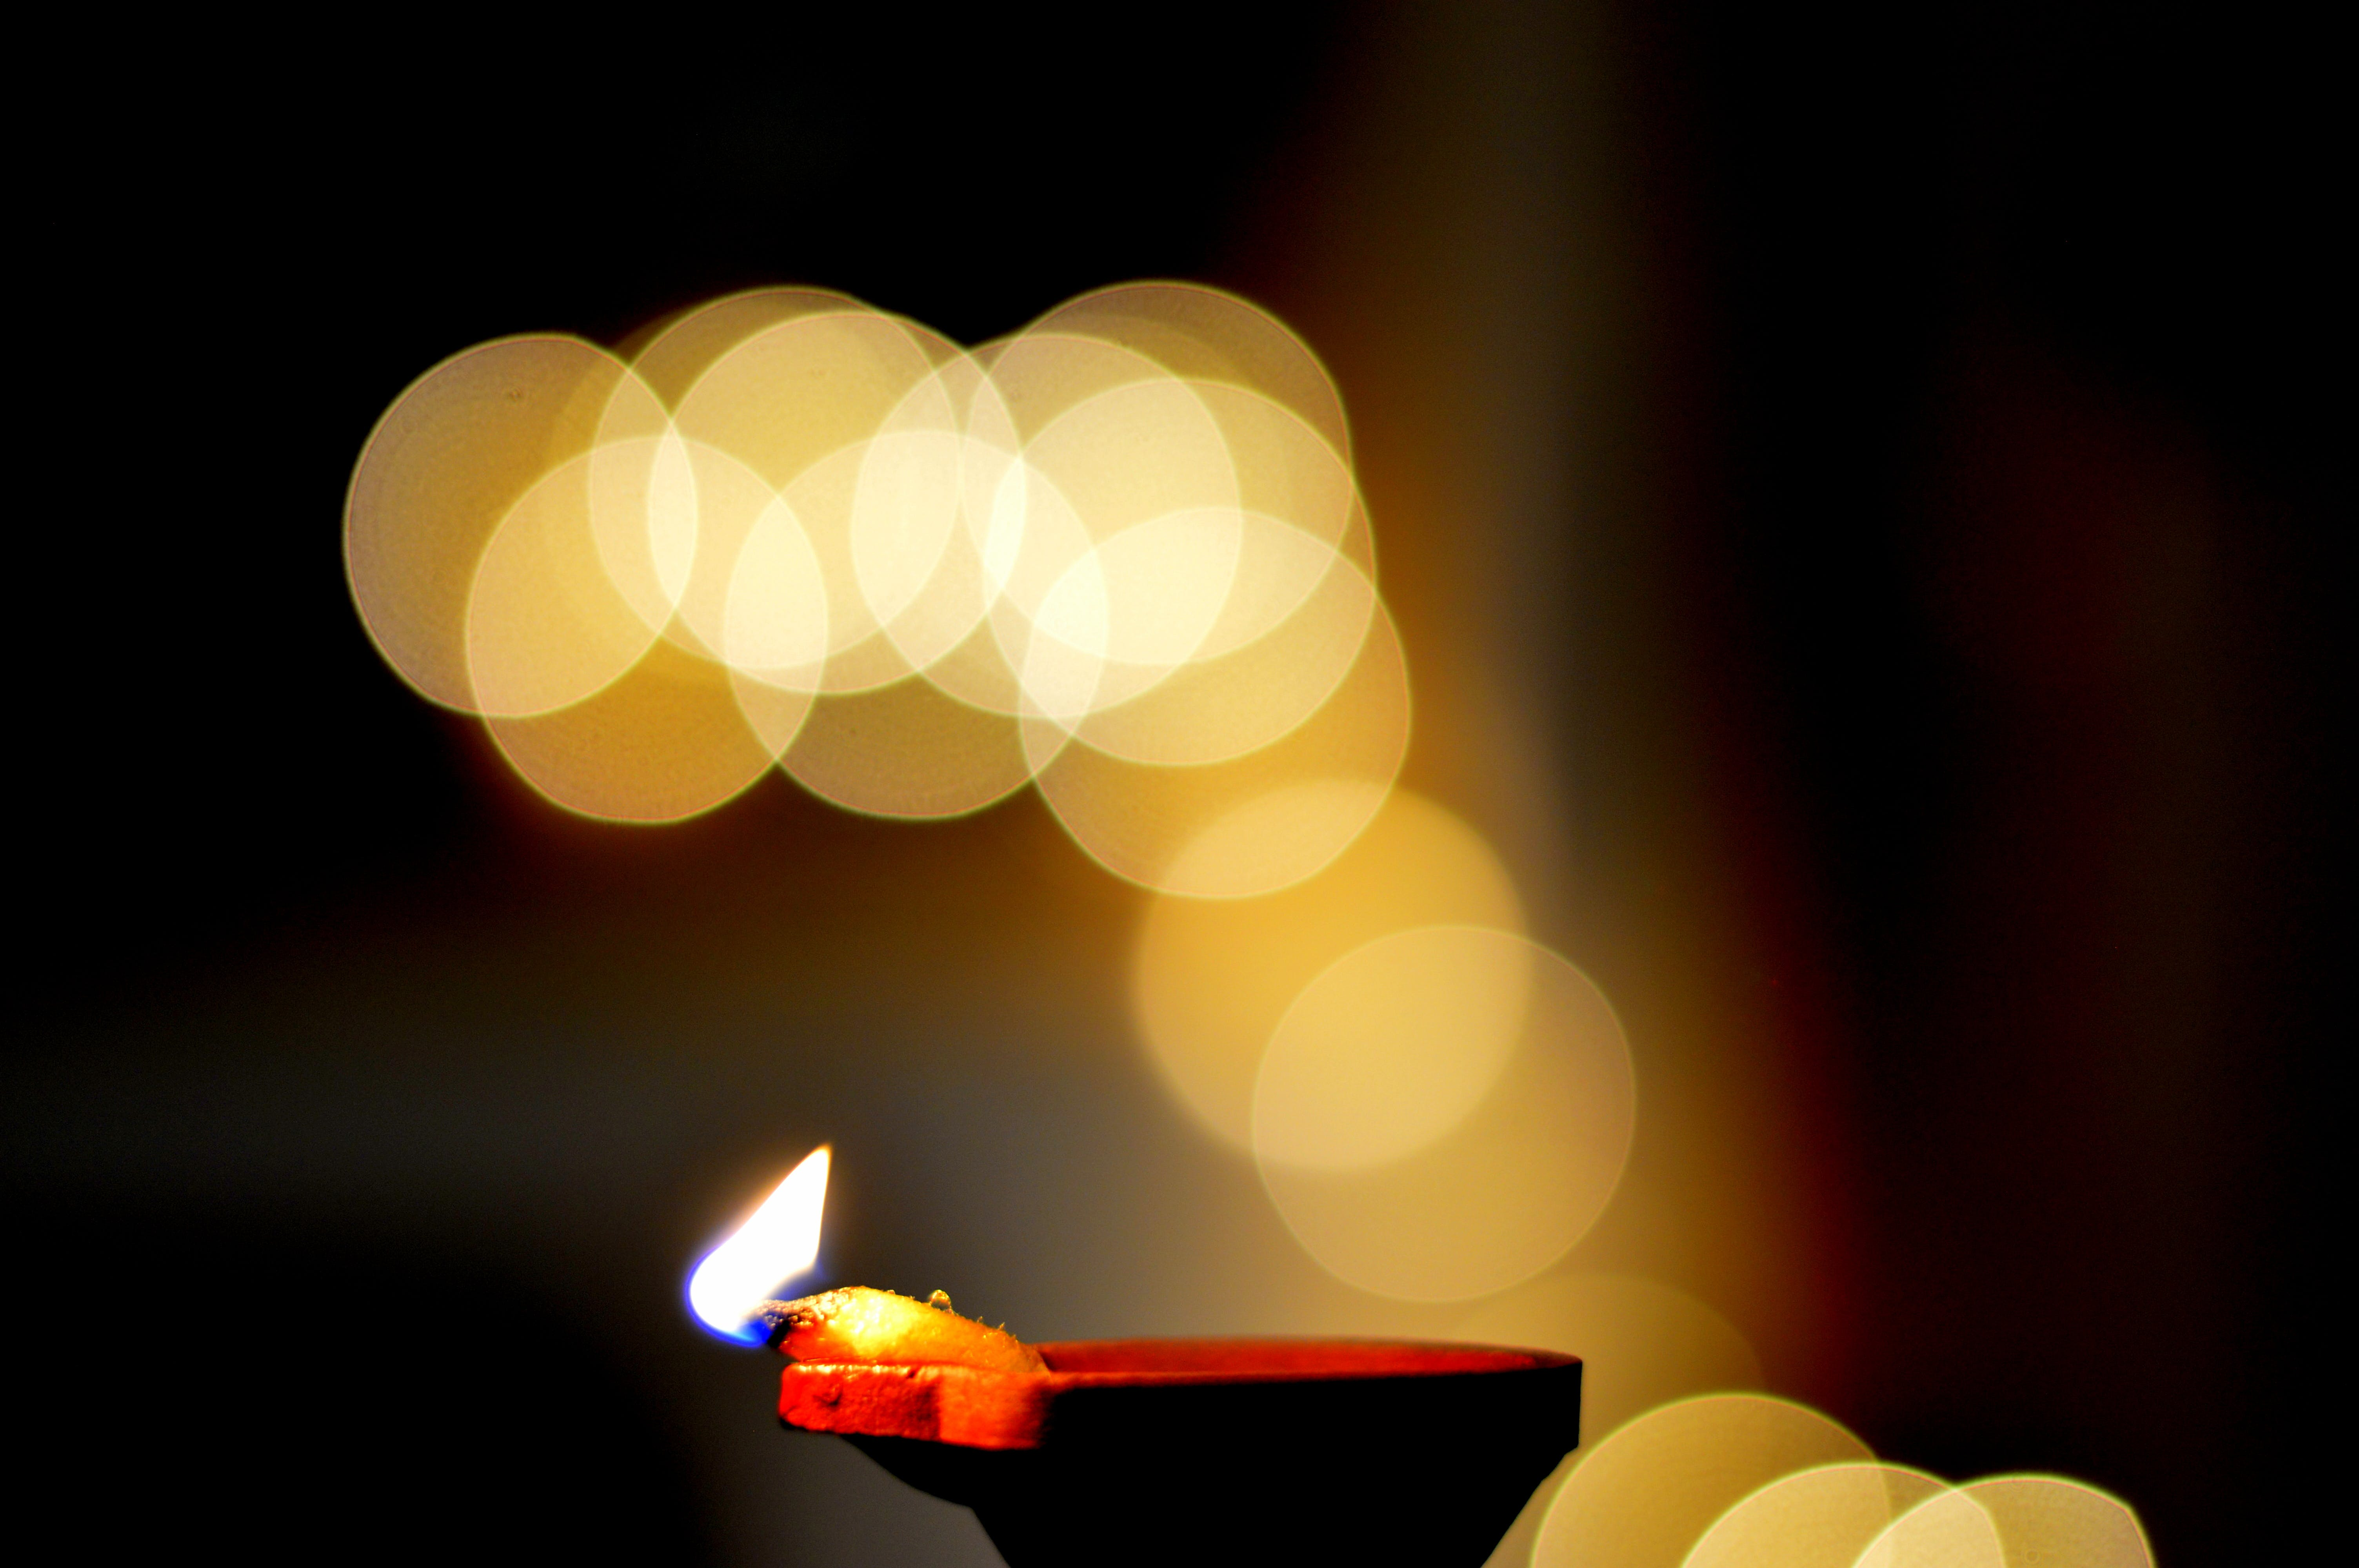 blurred, bokeh, candle